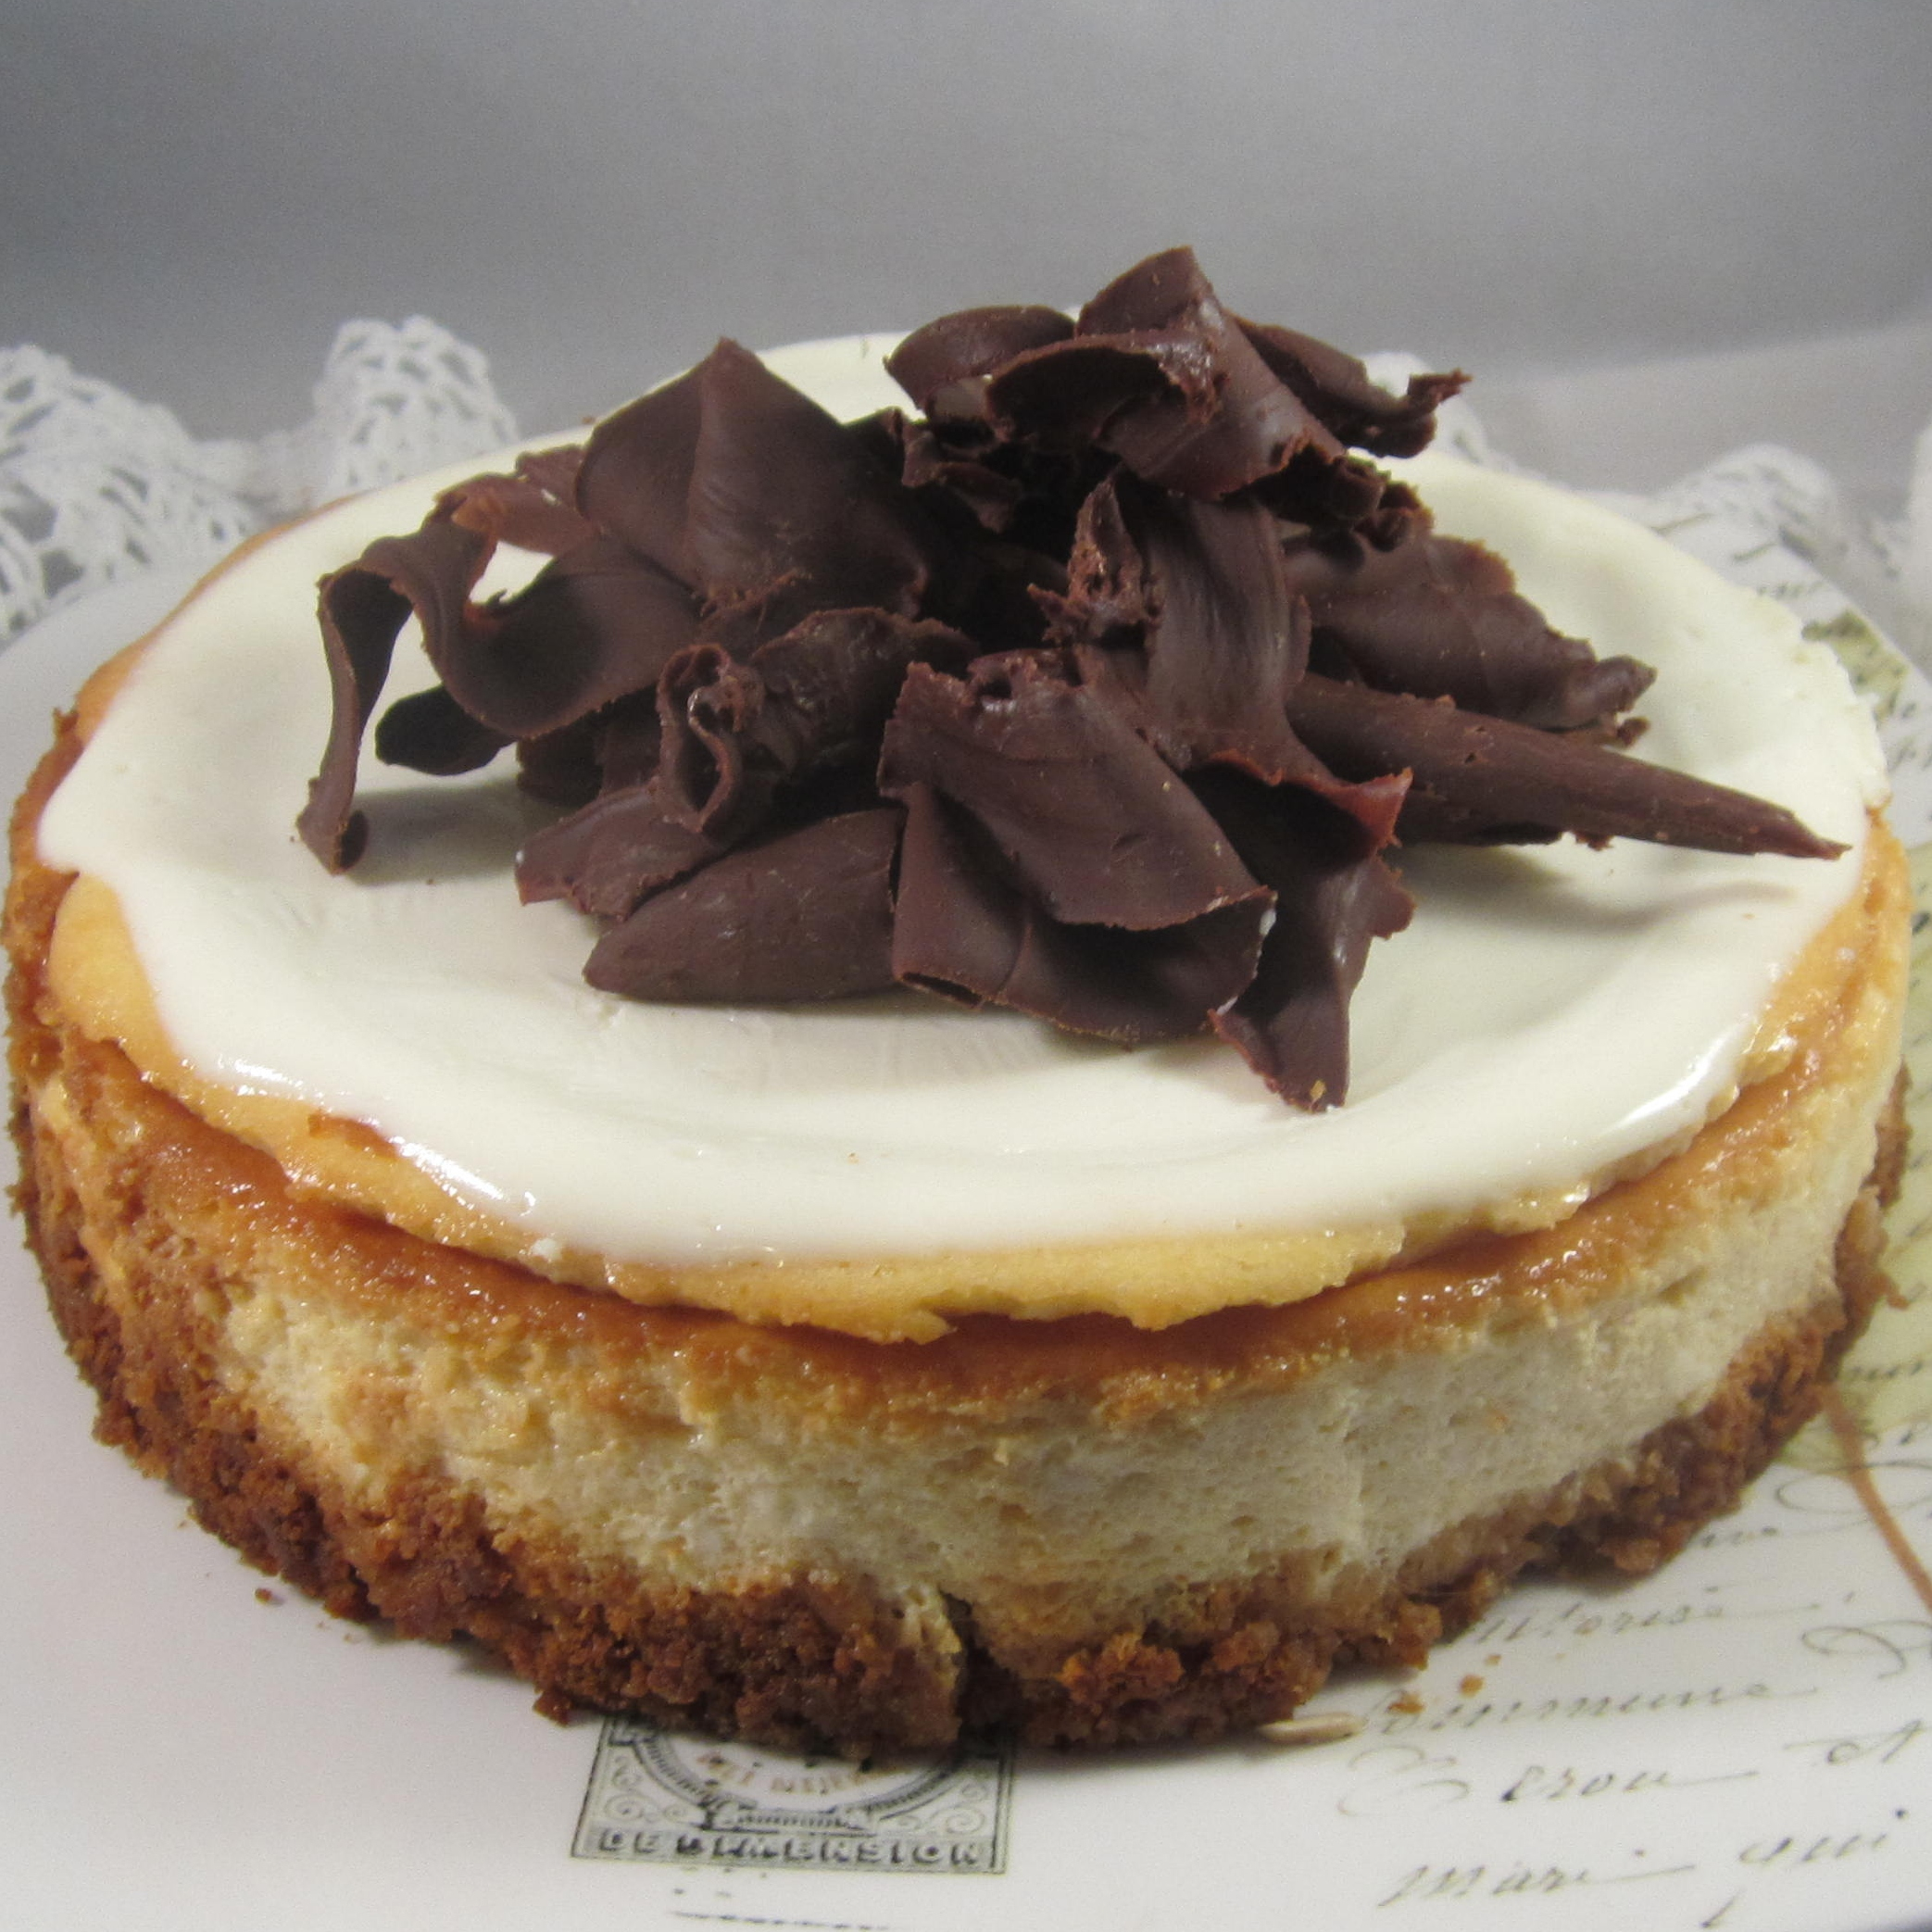 "Reviewers enjoyed this cheesecake, but suggest you bump up the Irish cream if you want that flavor to really come through. ""Very good cheesecake,"" says jmillan. ""I followed everyone's suggestion and used 1/2 cup of Bailey's. It gave it the perfect amount of flavor. My family LOVED it. Thank you."""